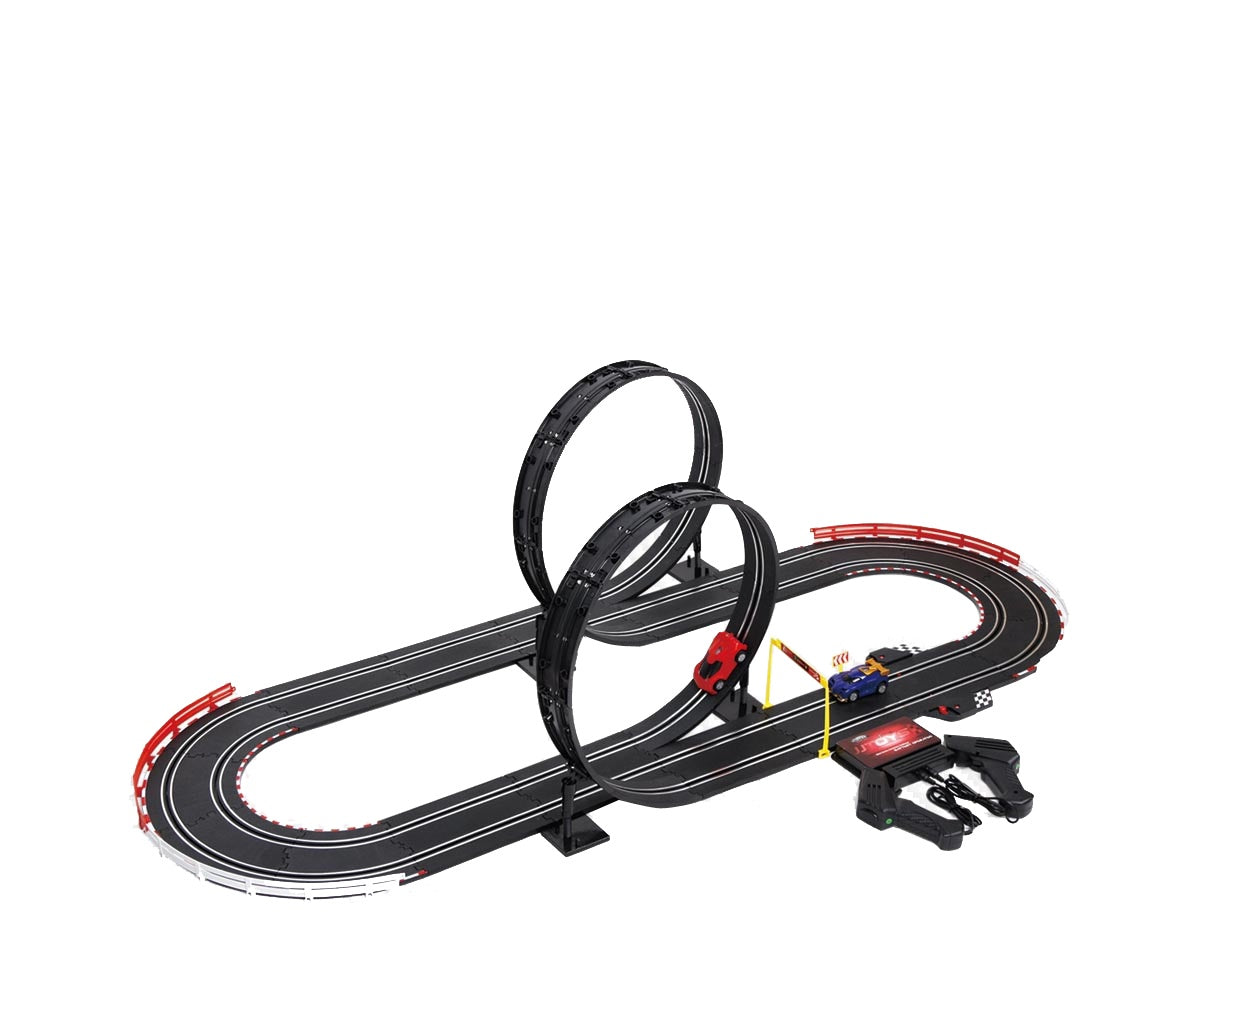 MMP Remote Control Racing Track Set